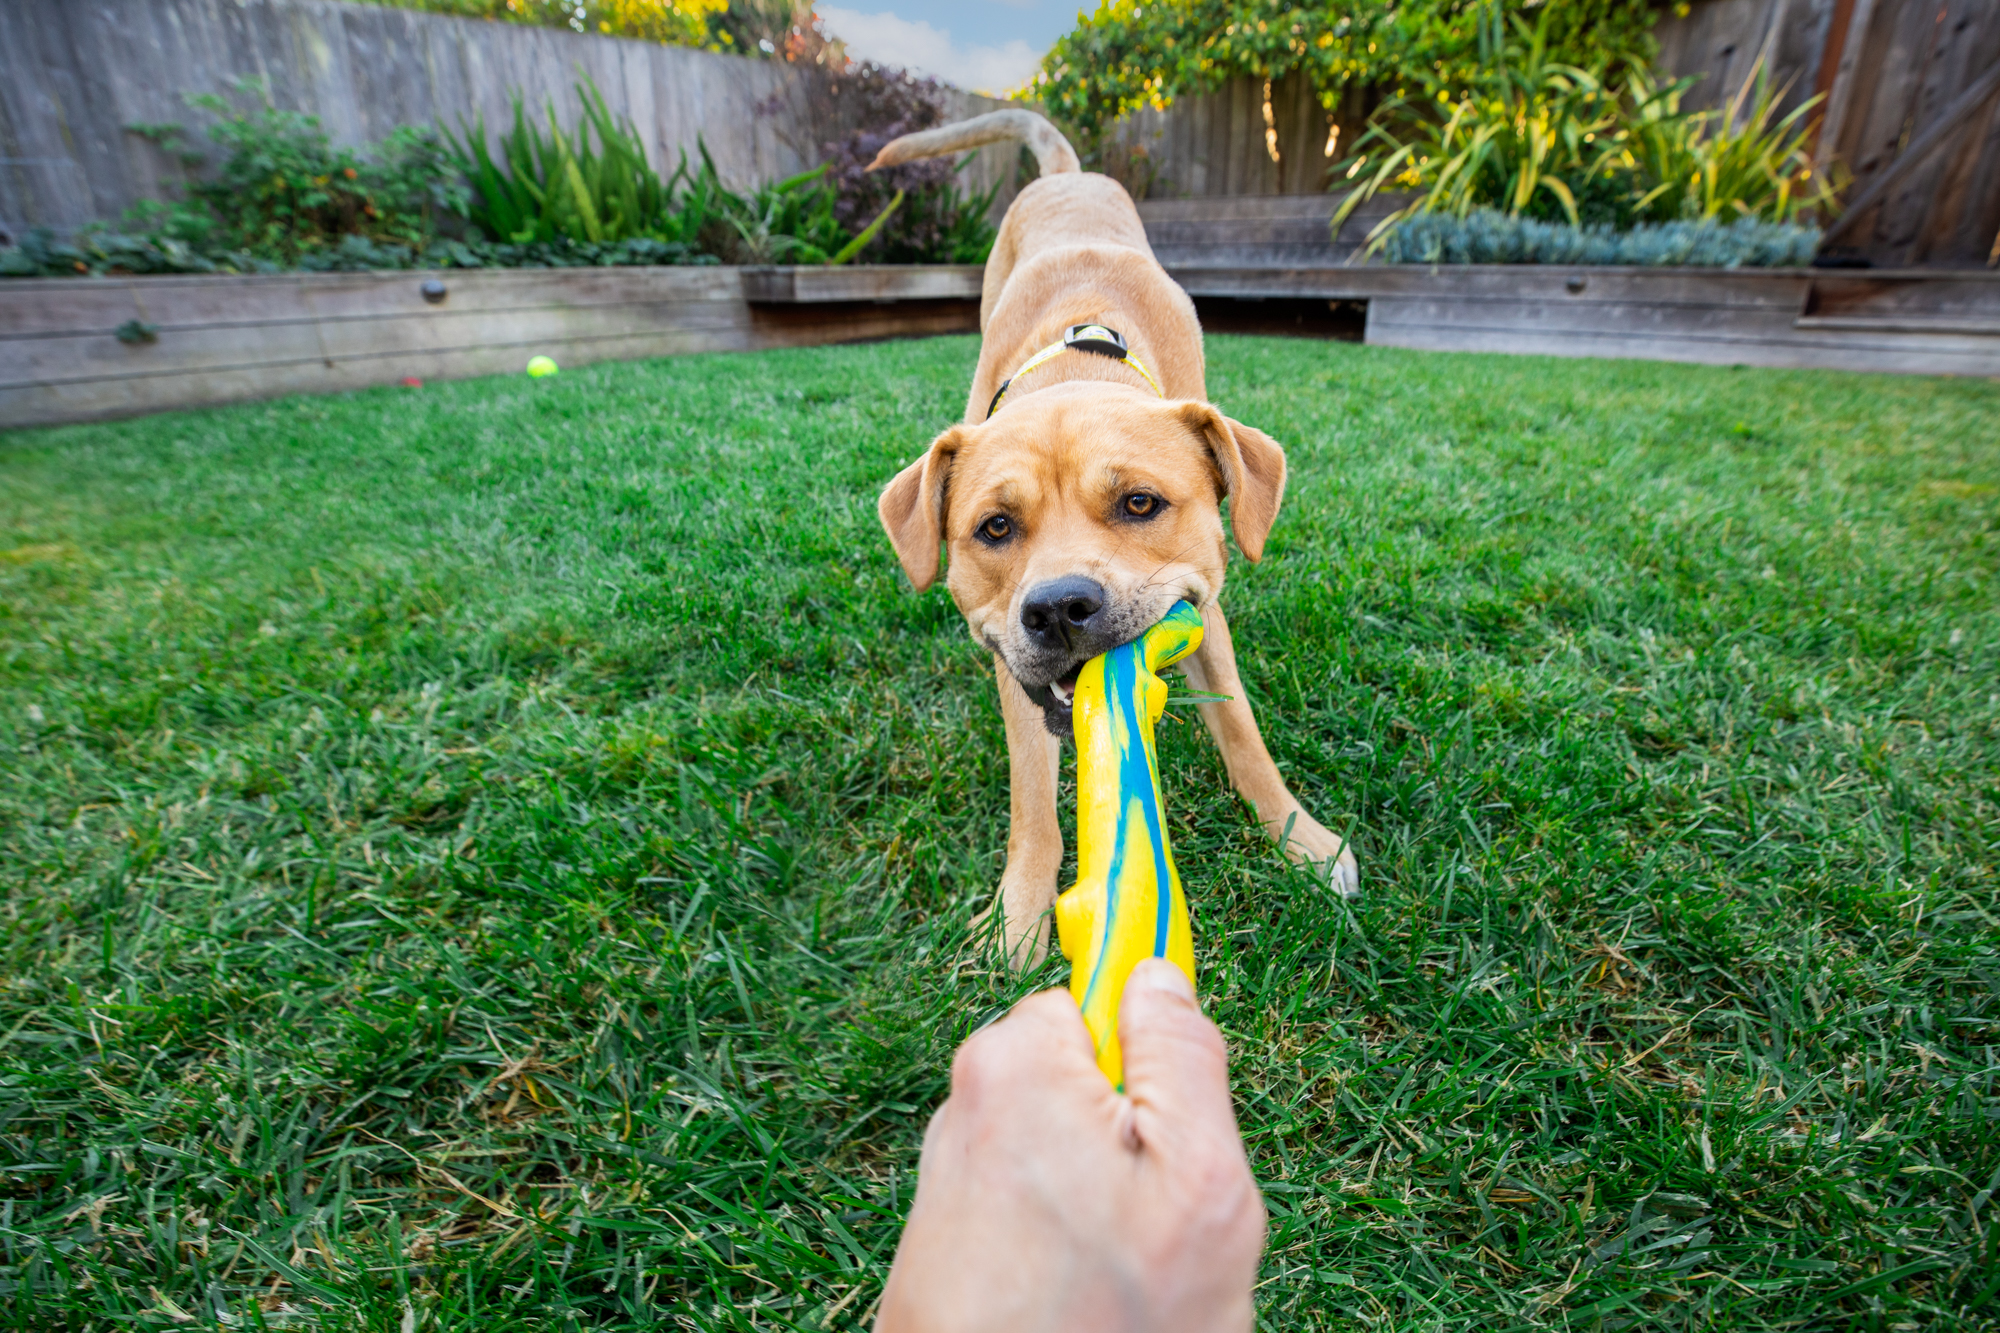 Mark Rogers plays with the talent and photographs a gorgeous strong yellow dog playing tug of war for Healthy Paws Pet Insurance